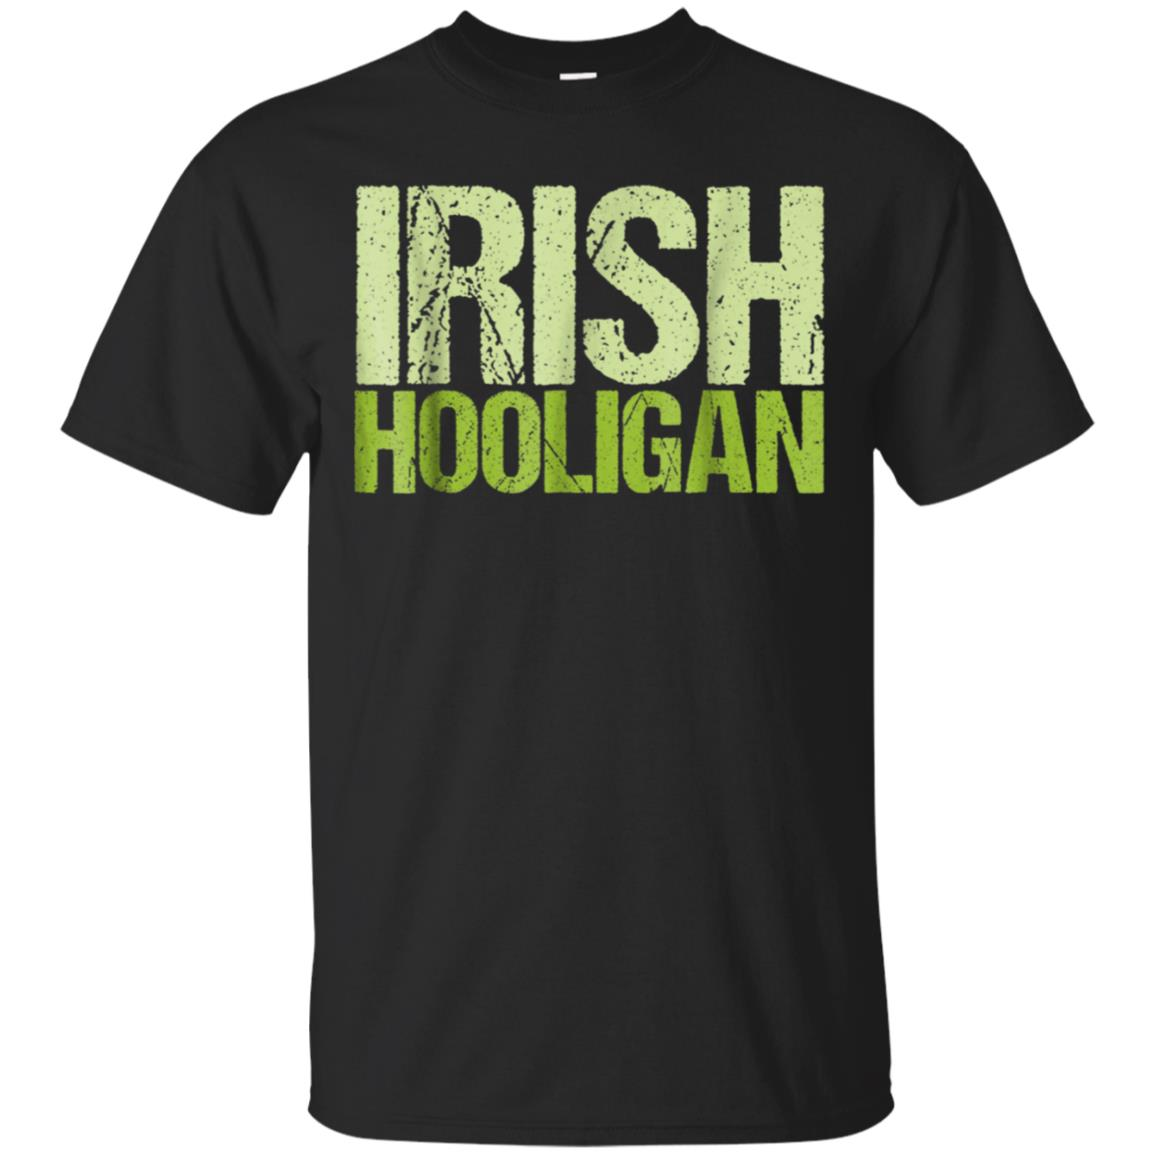 Cool St. Patrick's Day Irish Hooligan TShirt Shenanigans Tee 99promocode